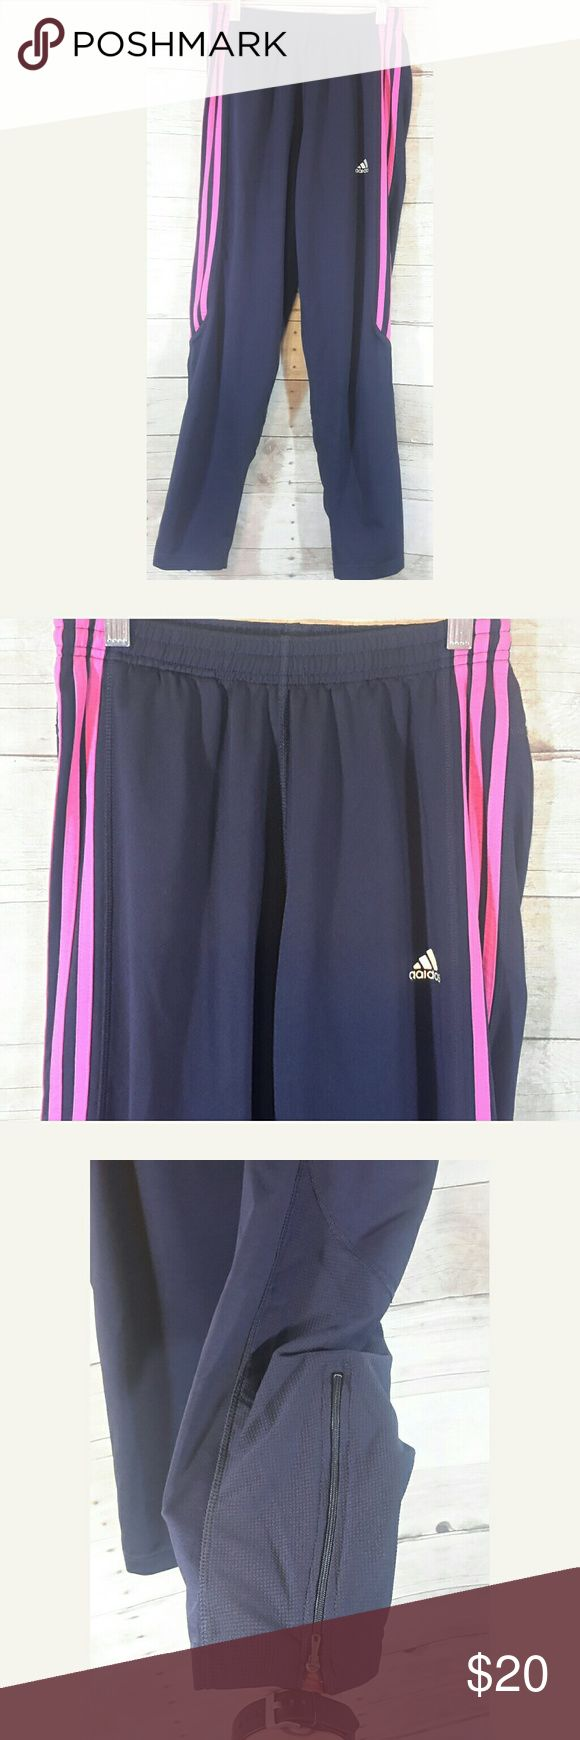 Adidas Climalite Running Pants Adidas Climalite Running Pants / Leggings  Dark blue with pink stripes Size medium  Zippers at the bottom of the legs 90% polyester,  10% spandex   Worn twice at most  Measurements  Inseam 27 Waist laid flat and unstretched 11.25 Rise 8.75  Any questions, please ask adidas Pants Track Pants & Joggers